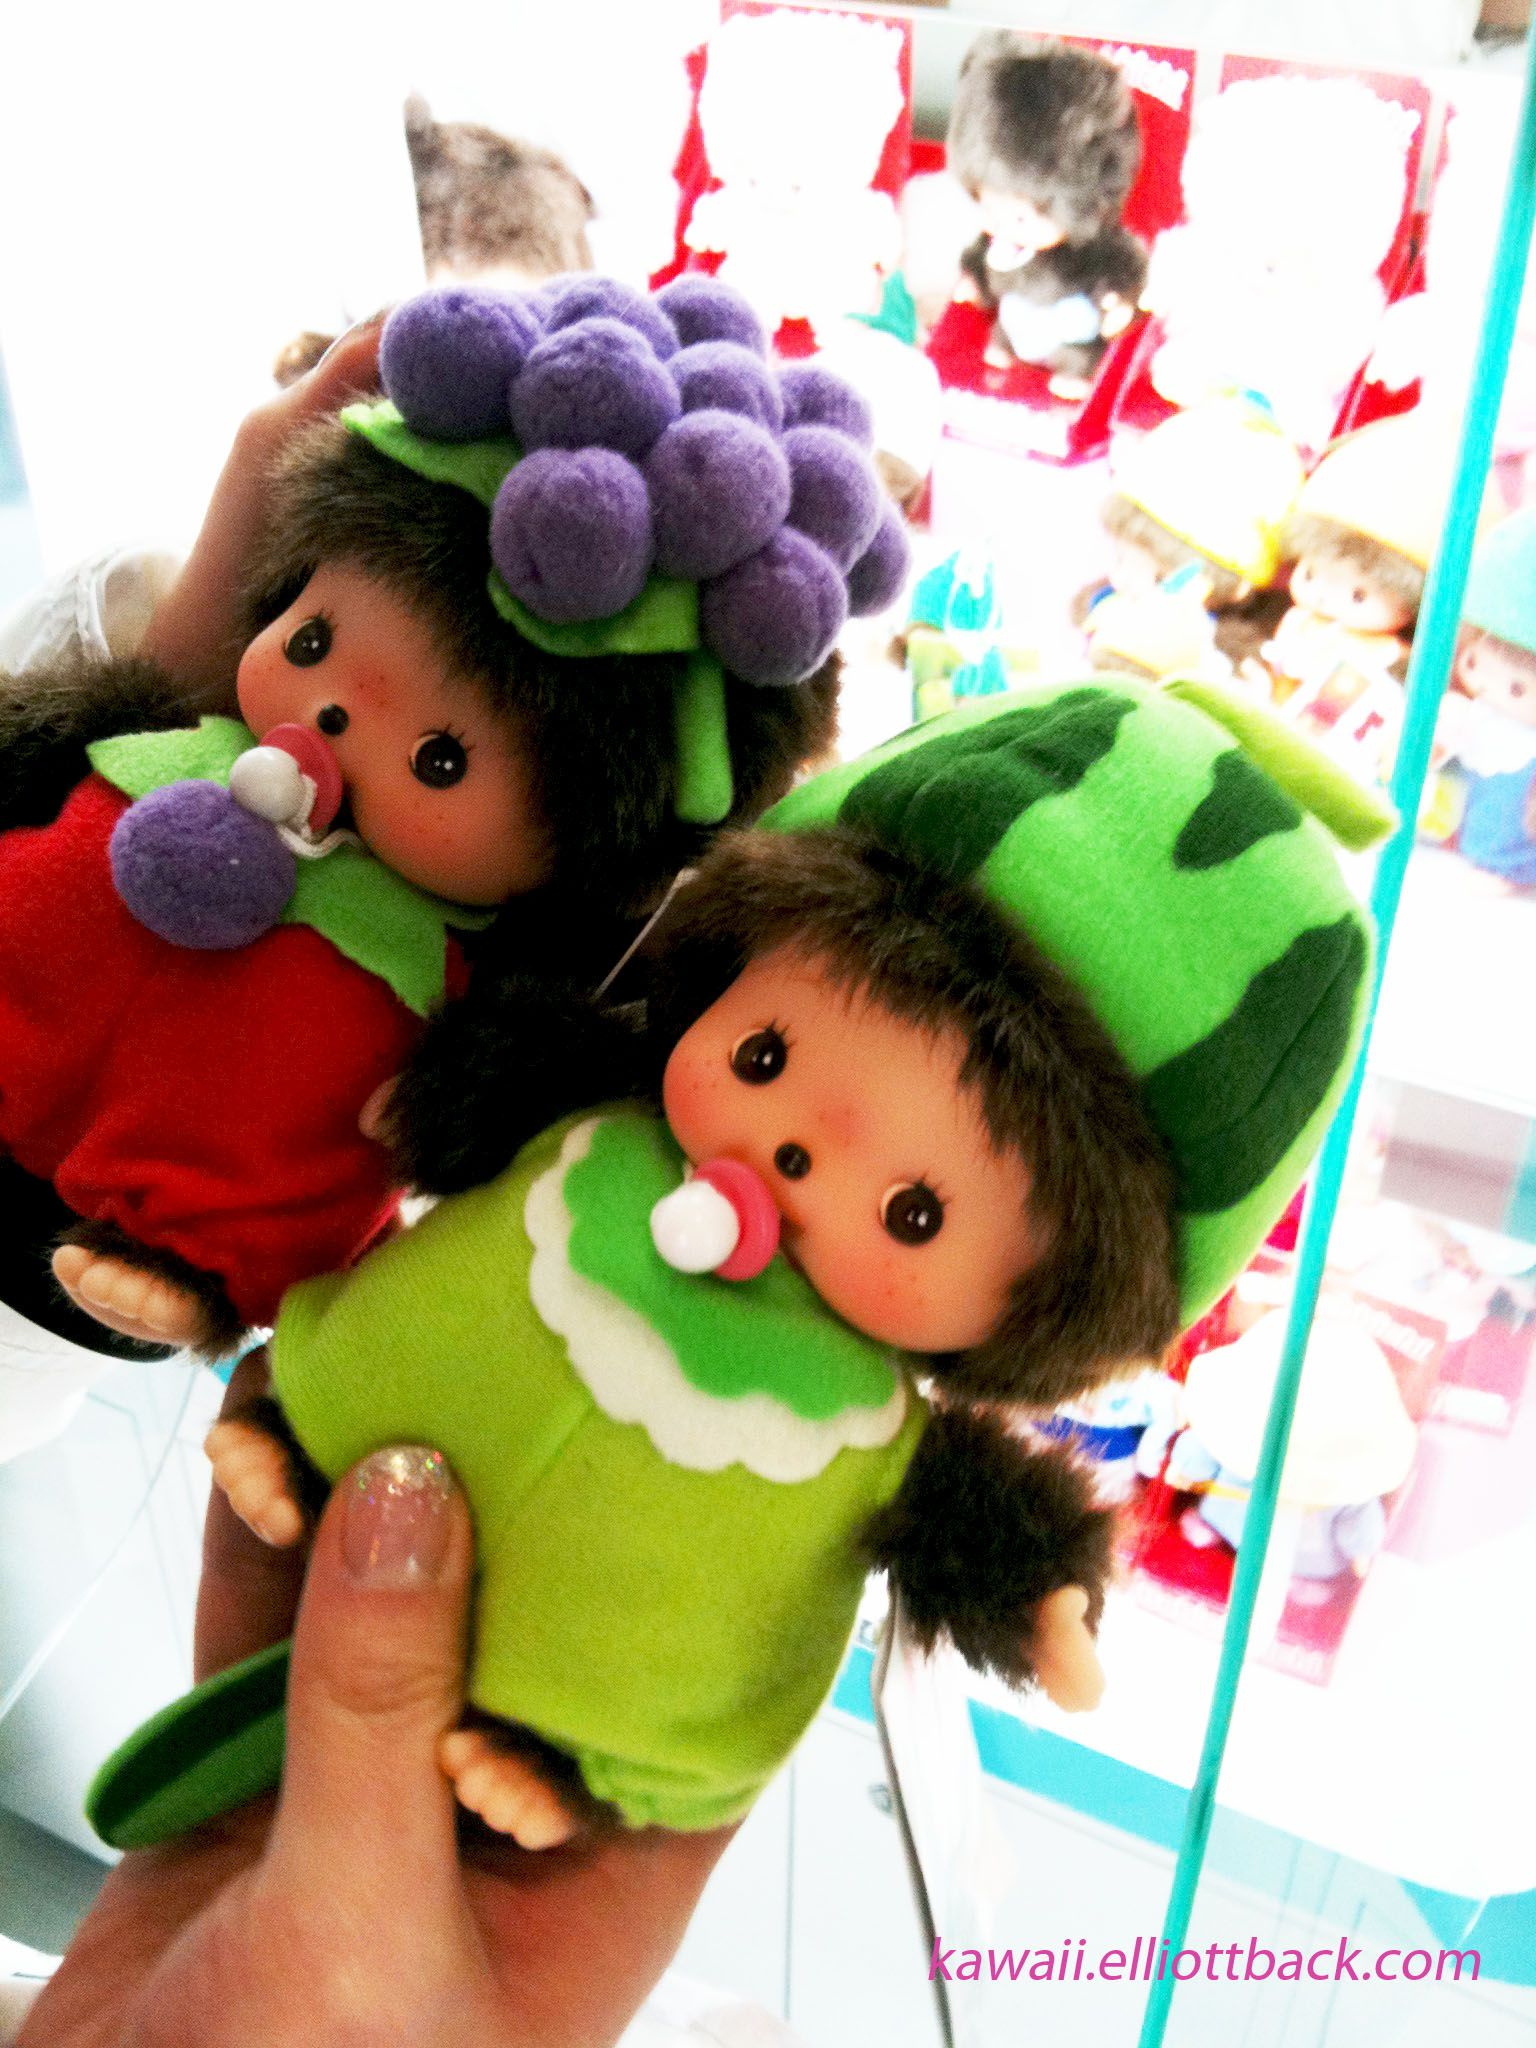 Uncategorized Monchichi Cartoon monchhichi came originally from a japanese animated series known as no